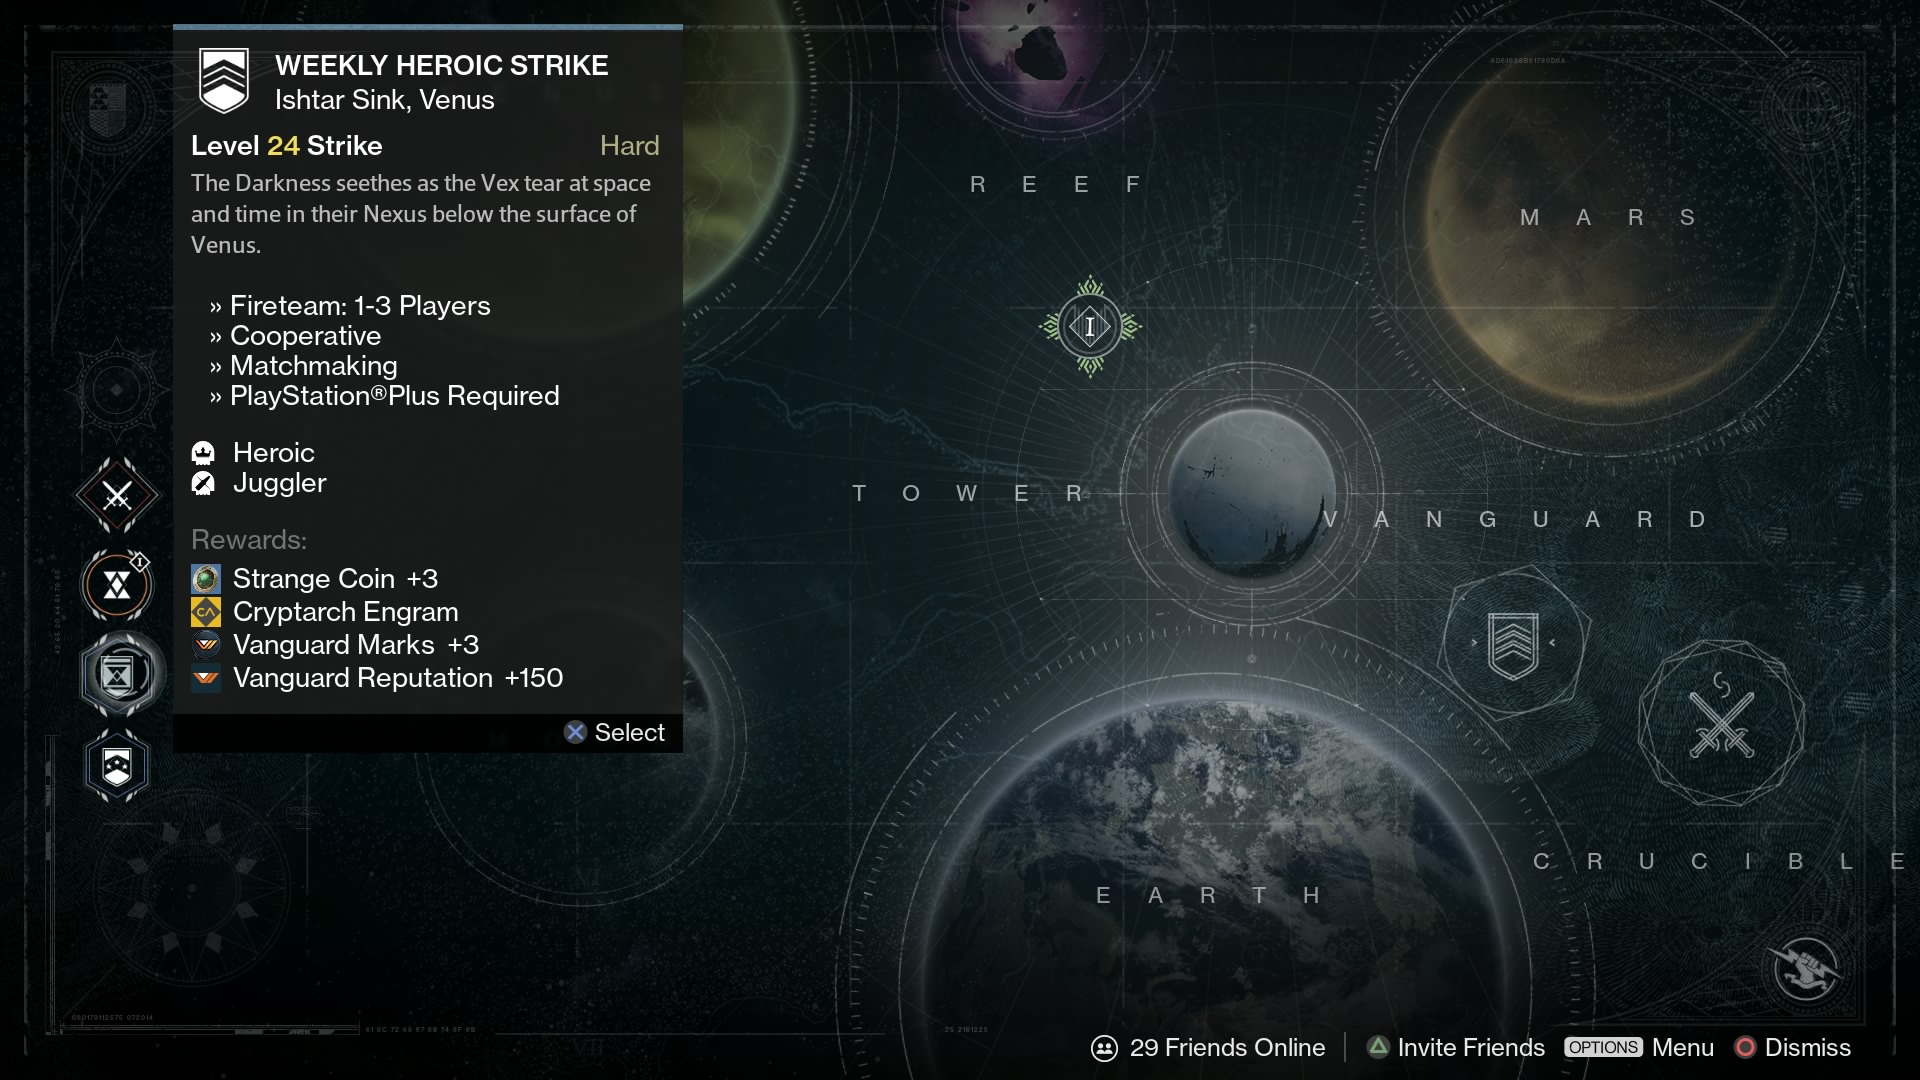 No matchmaking weekly heroic strike